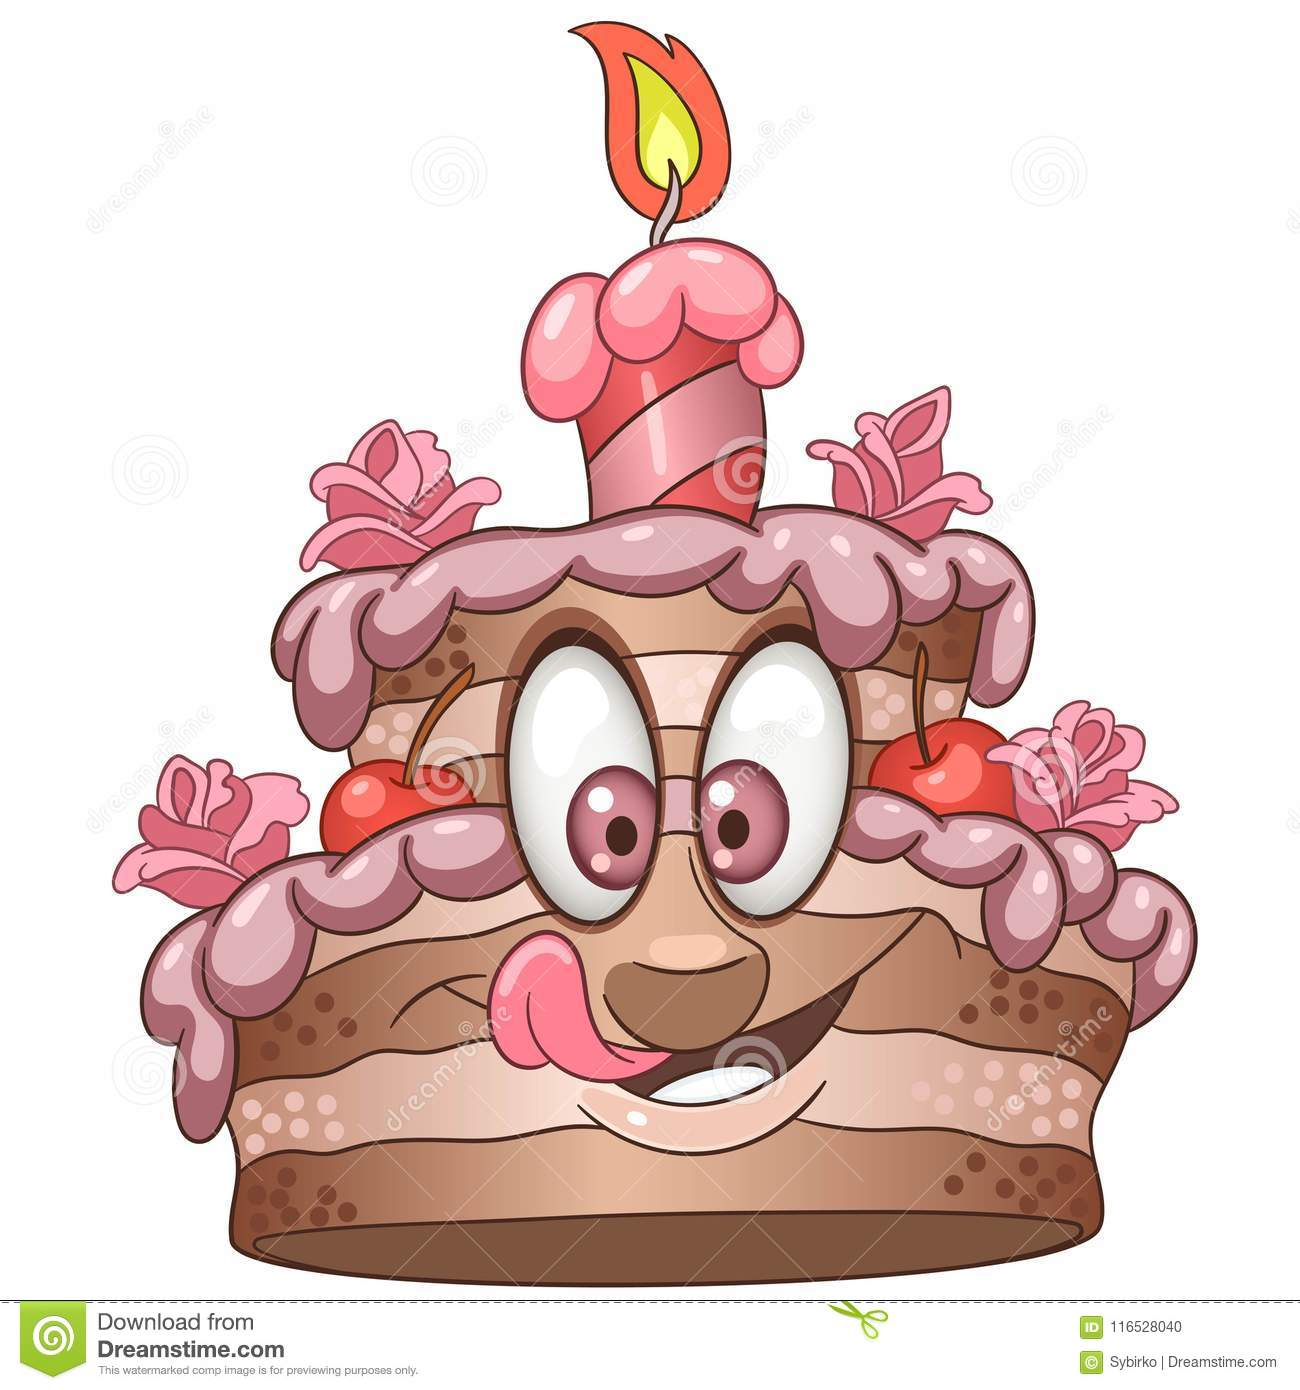 Birthday Cake With A Candle Happy Pastry Food Concept Funny Emoticon Smiley Idea Emoji Cartoon Design For Kids Coloring Book Colouring Page